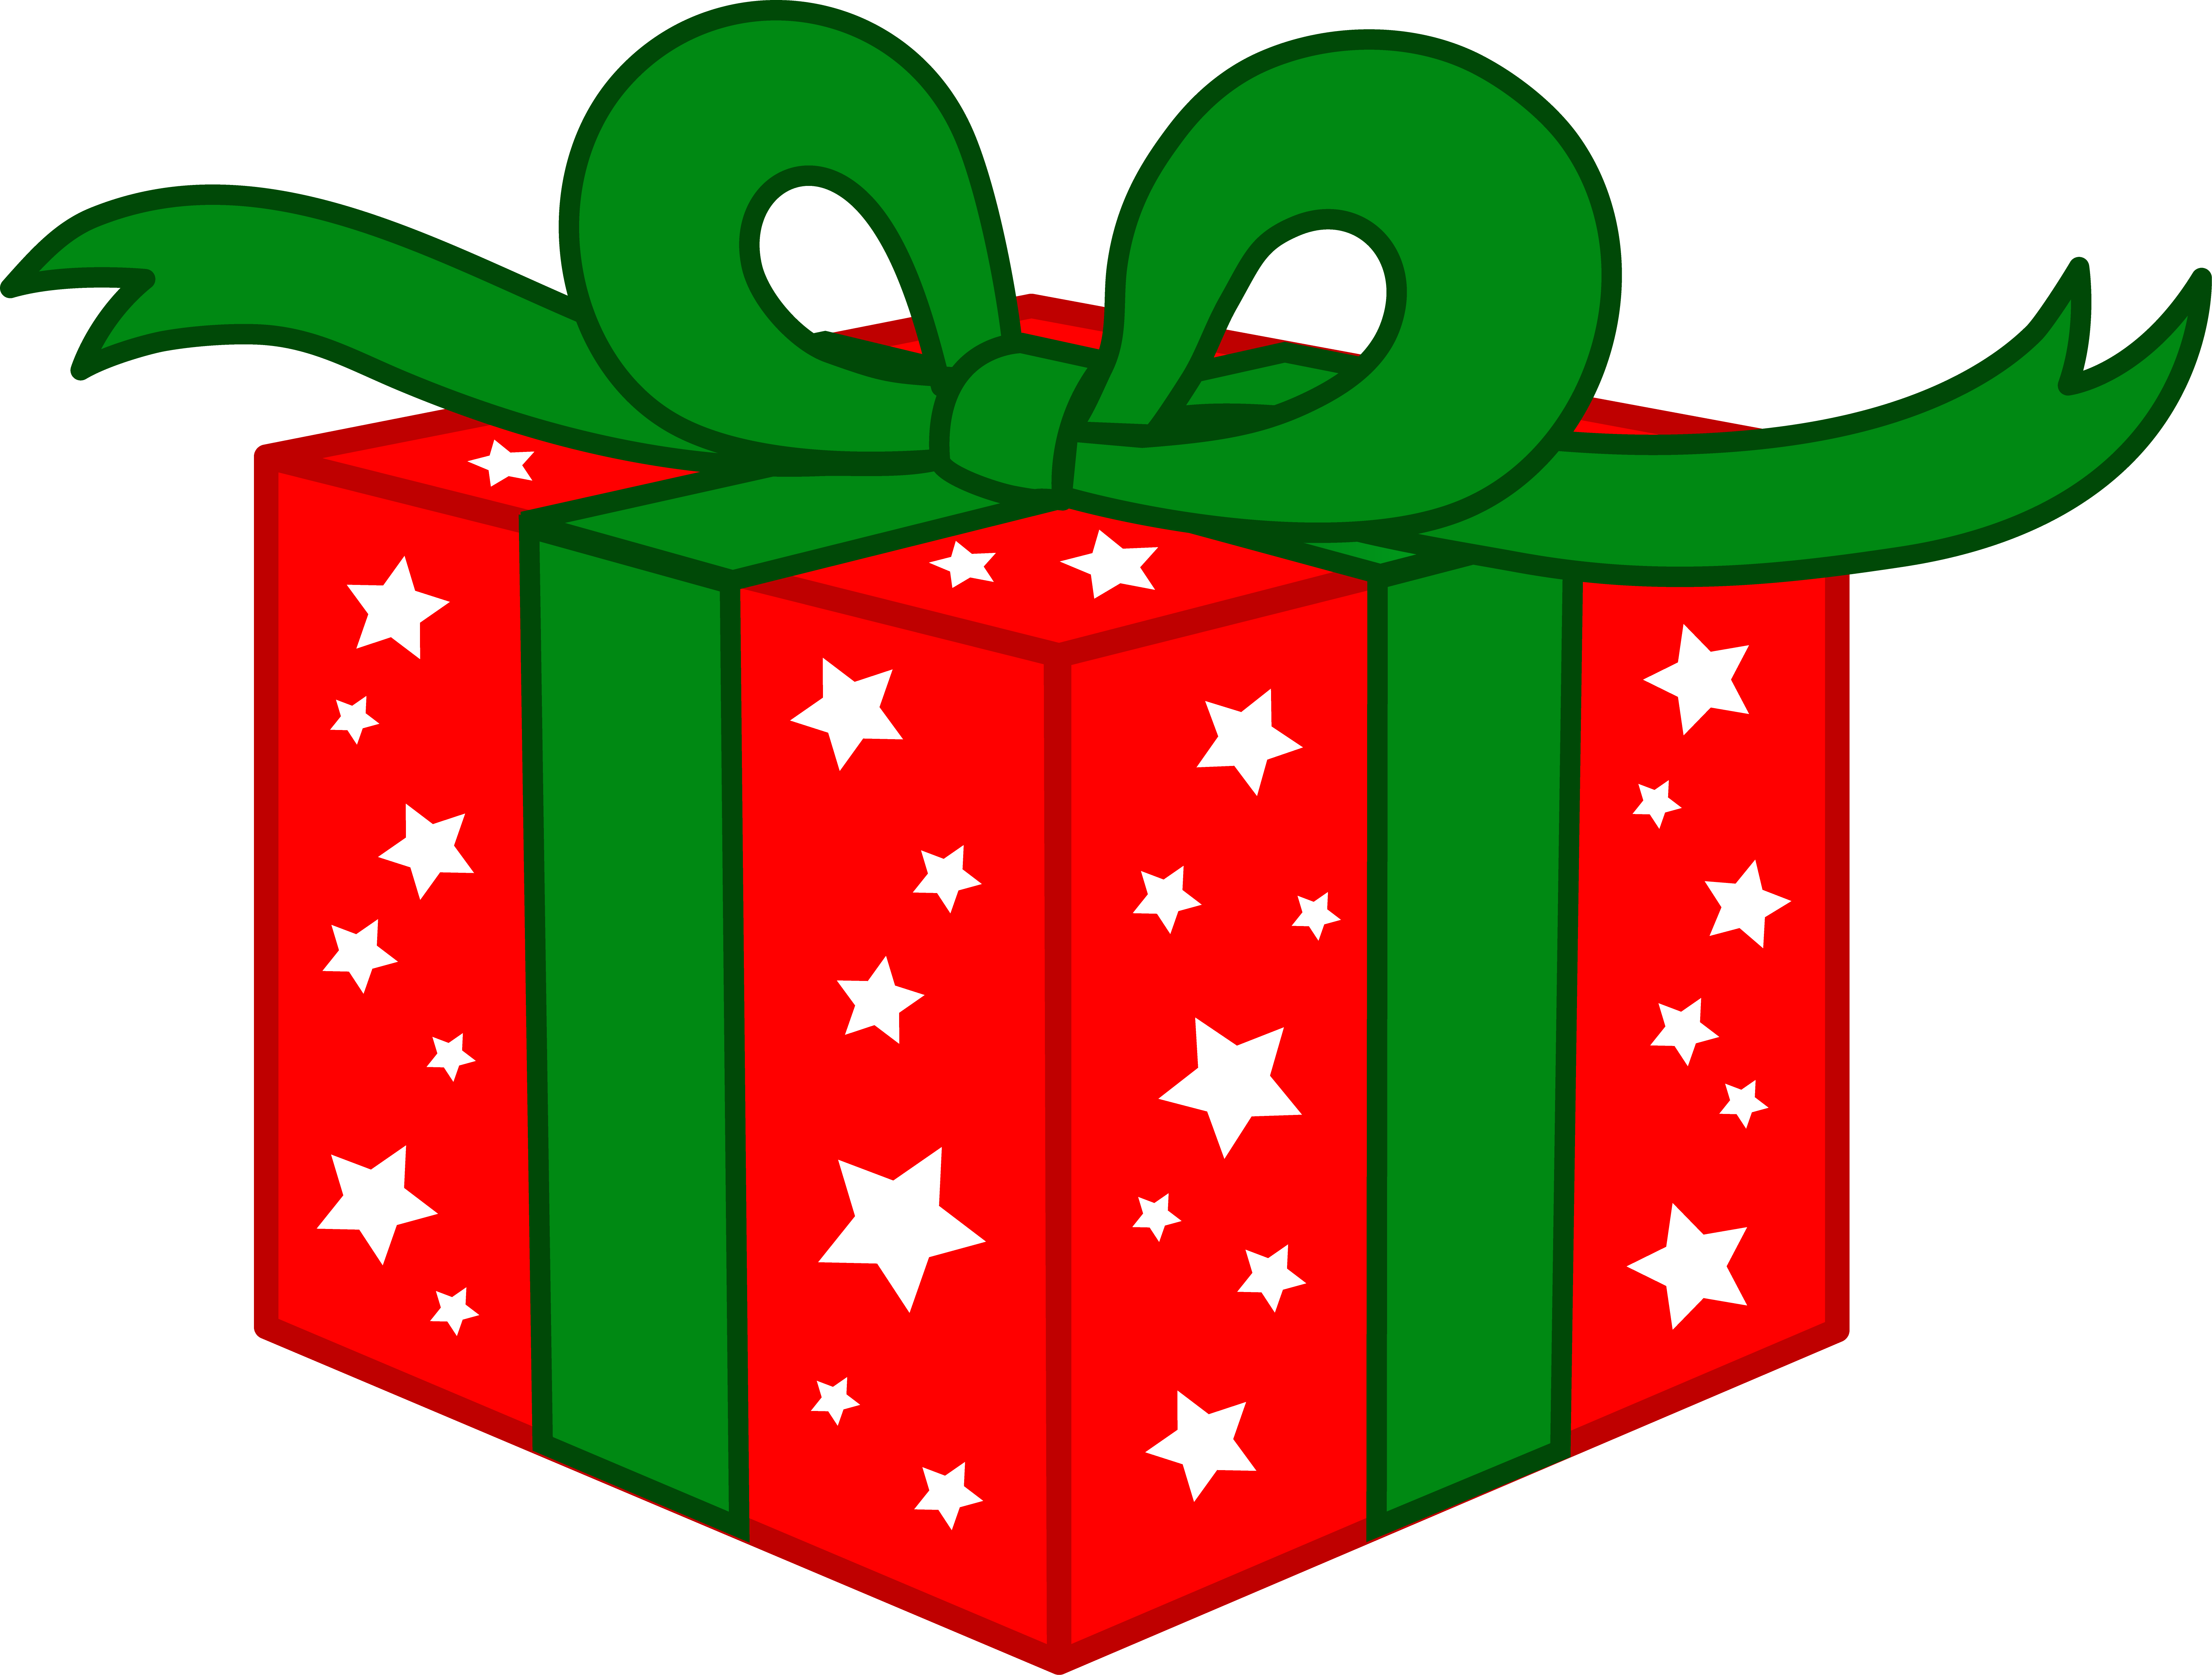 Free clipart of presents png royalty free library Free Christmas Gifts Cliparts, Download Free Clip Art, Free Clip Art ... png royalty free library